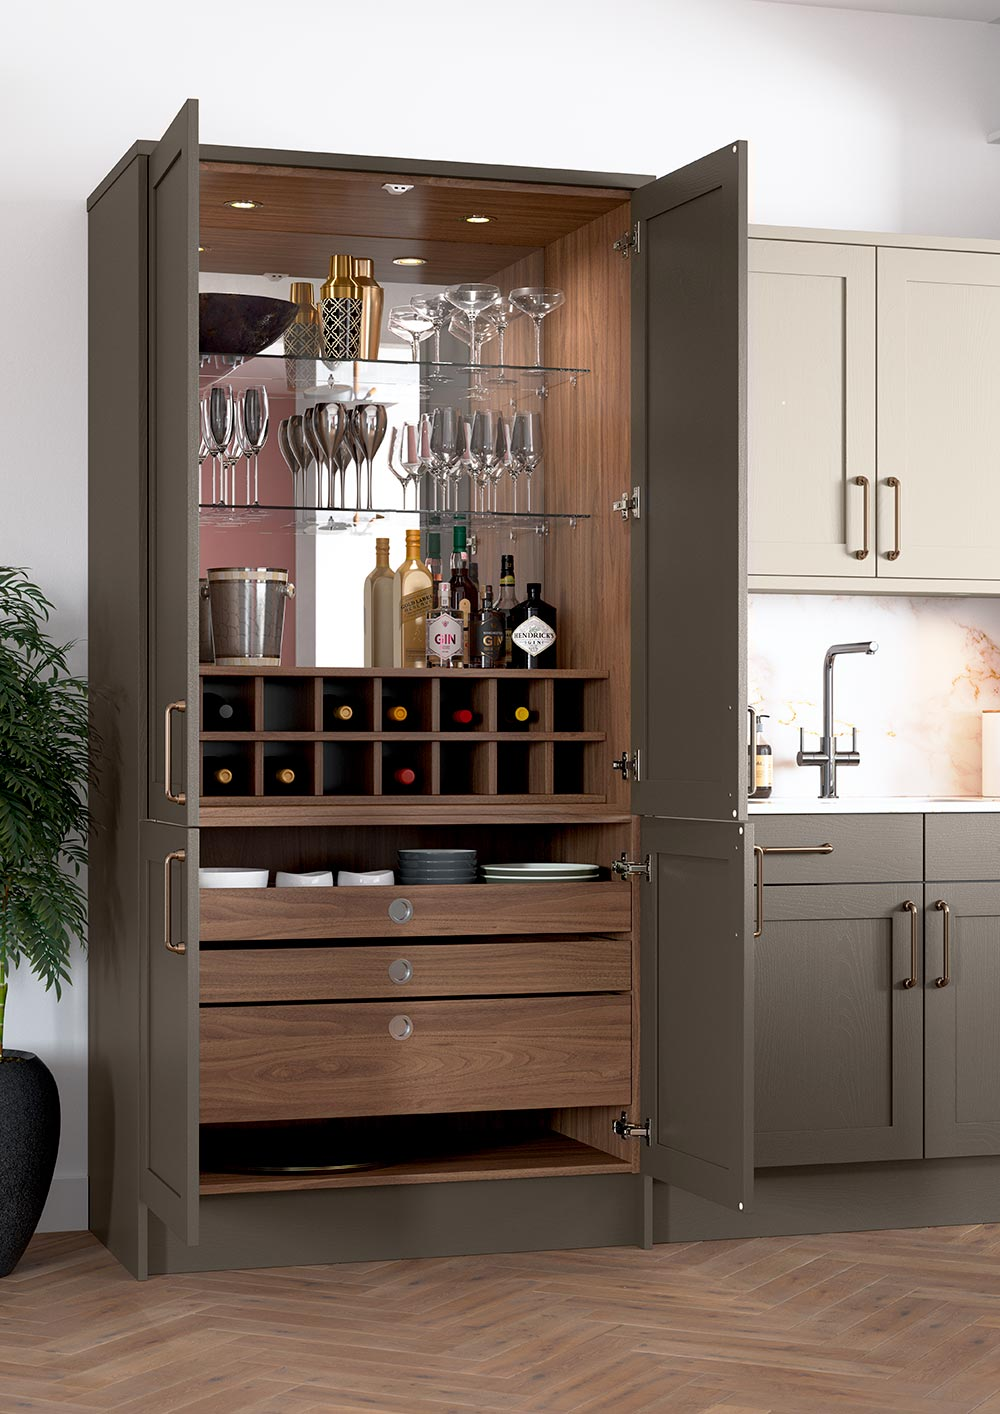 Drinks & Cocktail Cabinet | The Connery by Sigma 3 Kitchens